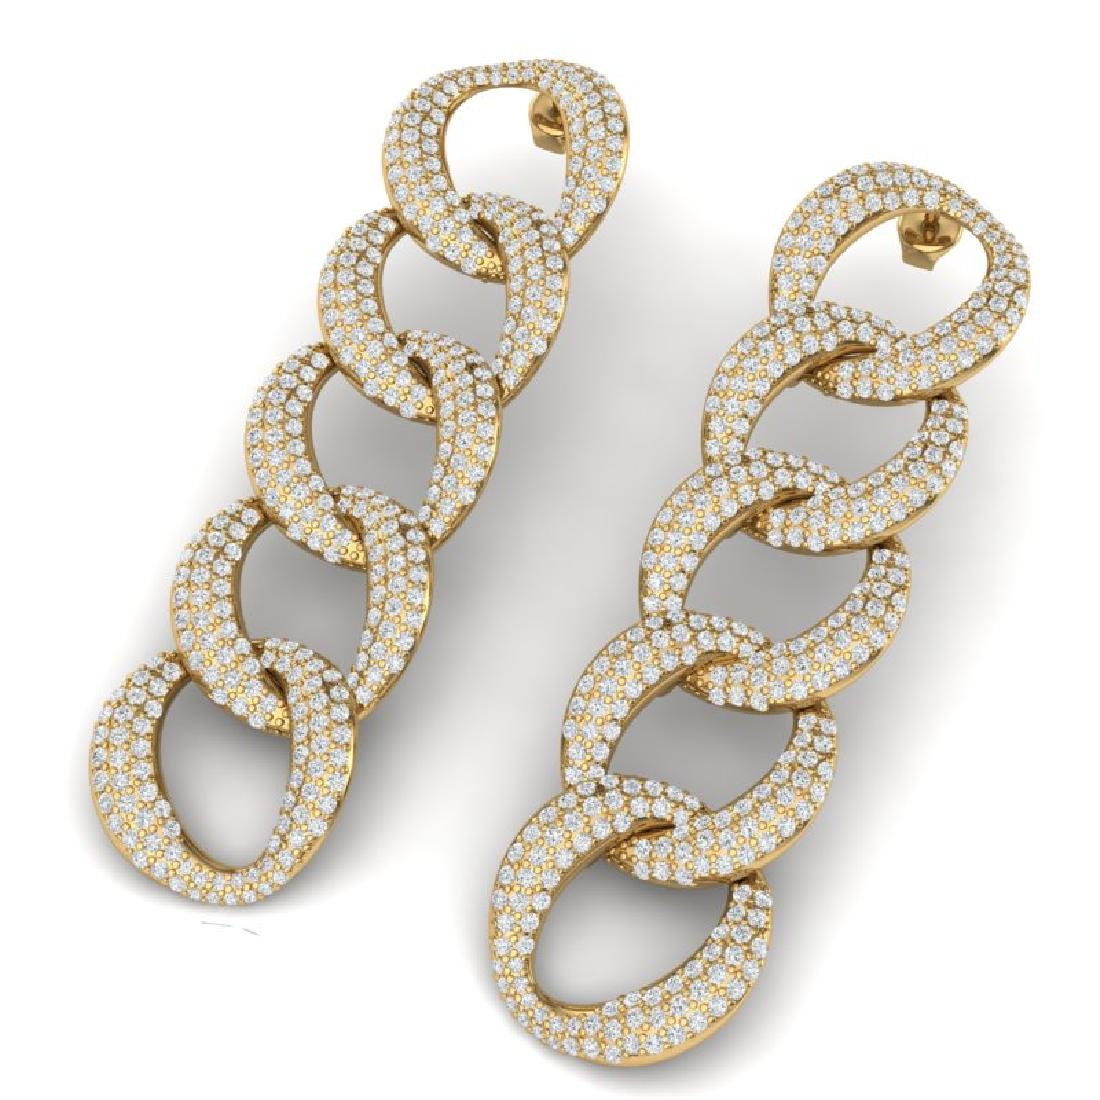 5 CTW Certified VS/SI Diamond Earrings 18K Yellow Gold